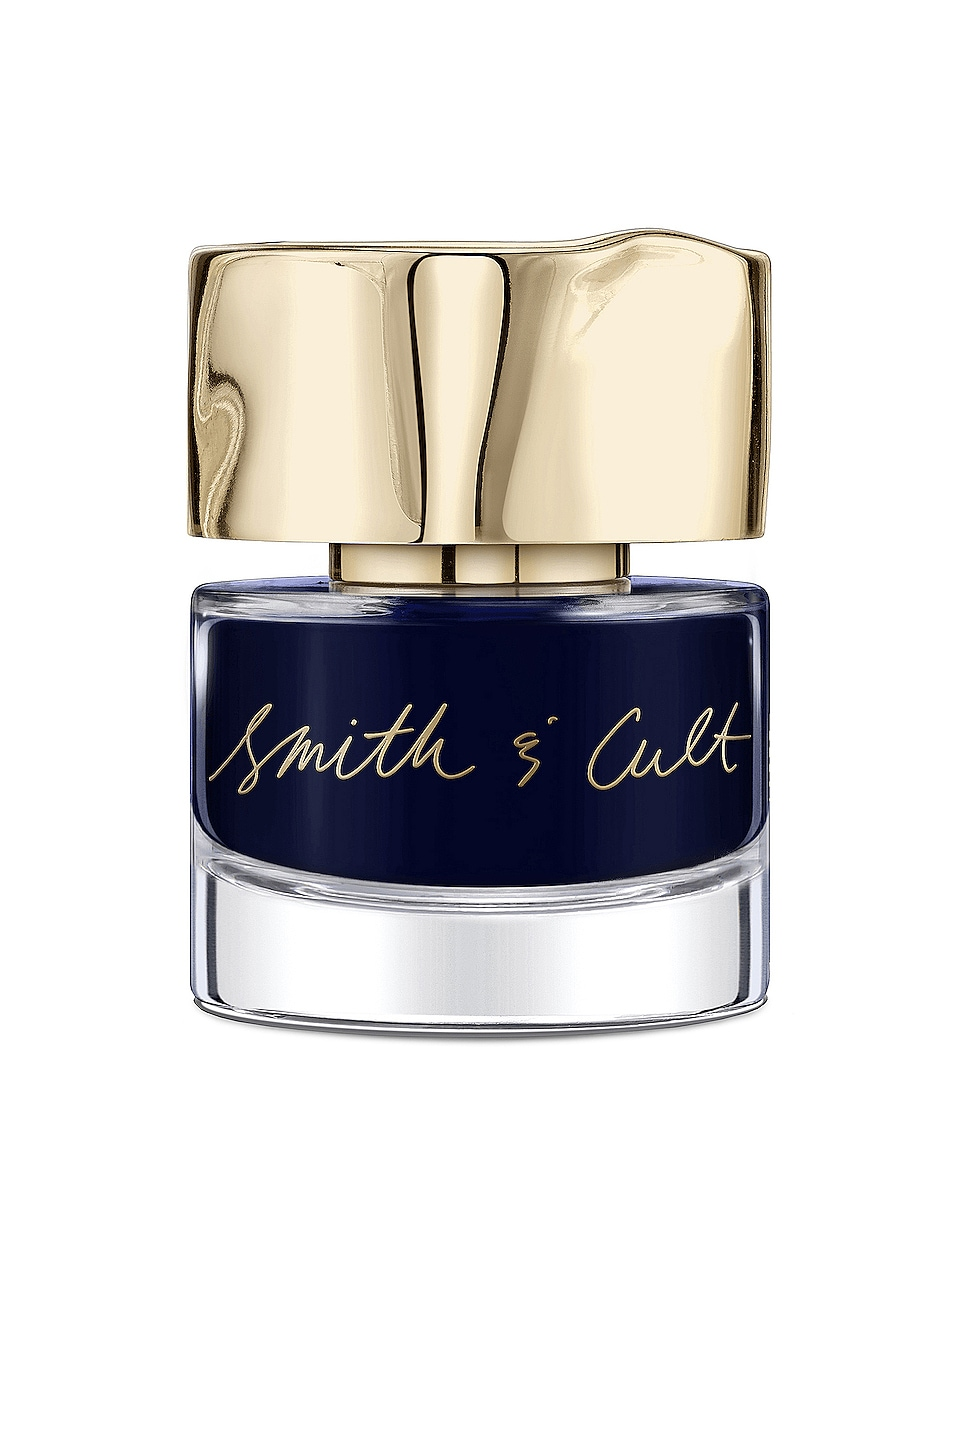 Smith & Cult Nail Lacquer in Kings & Thieves